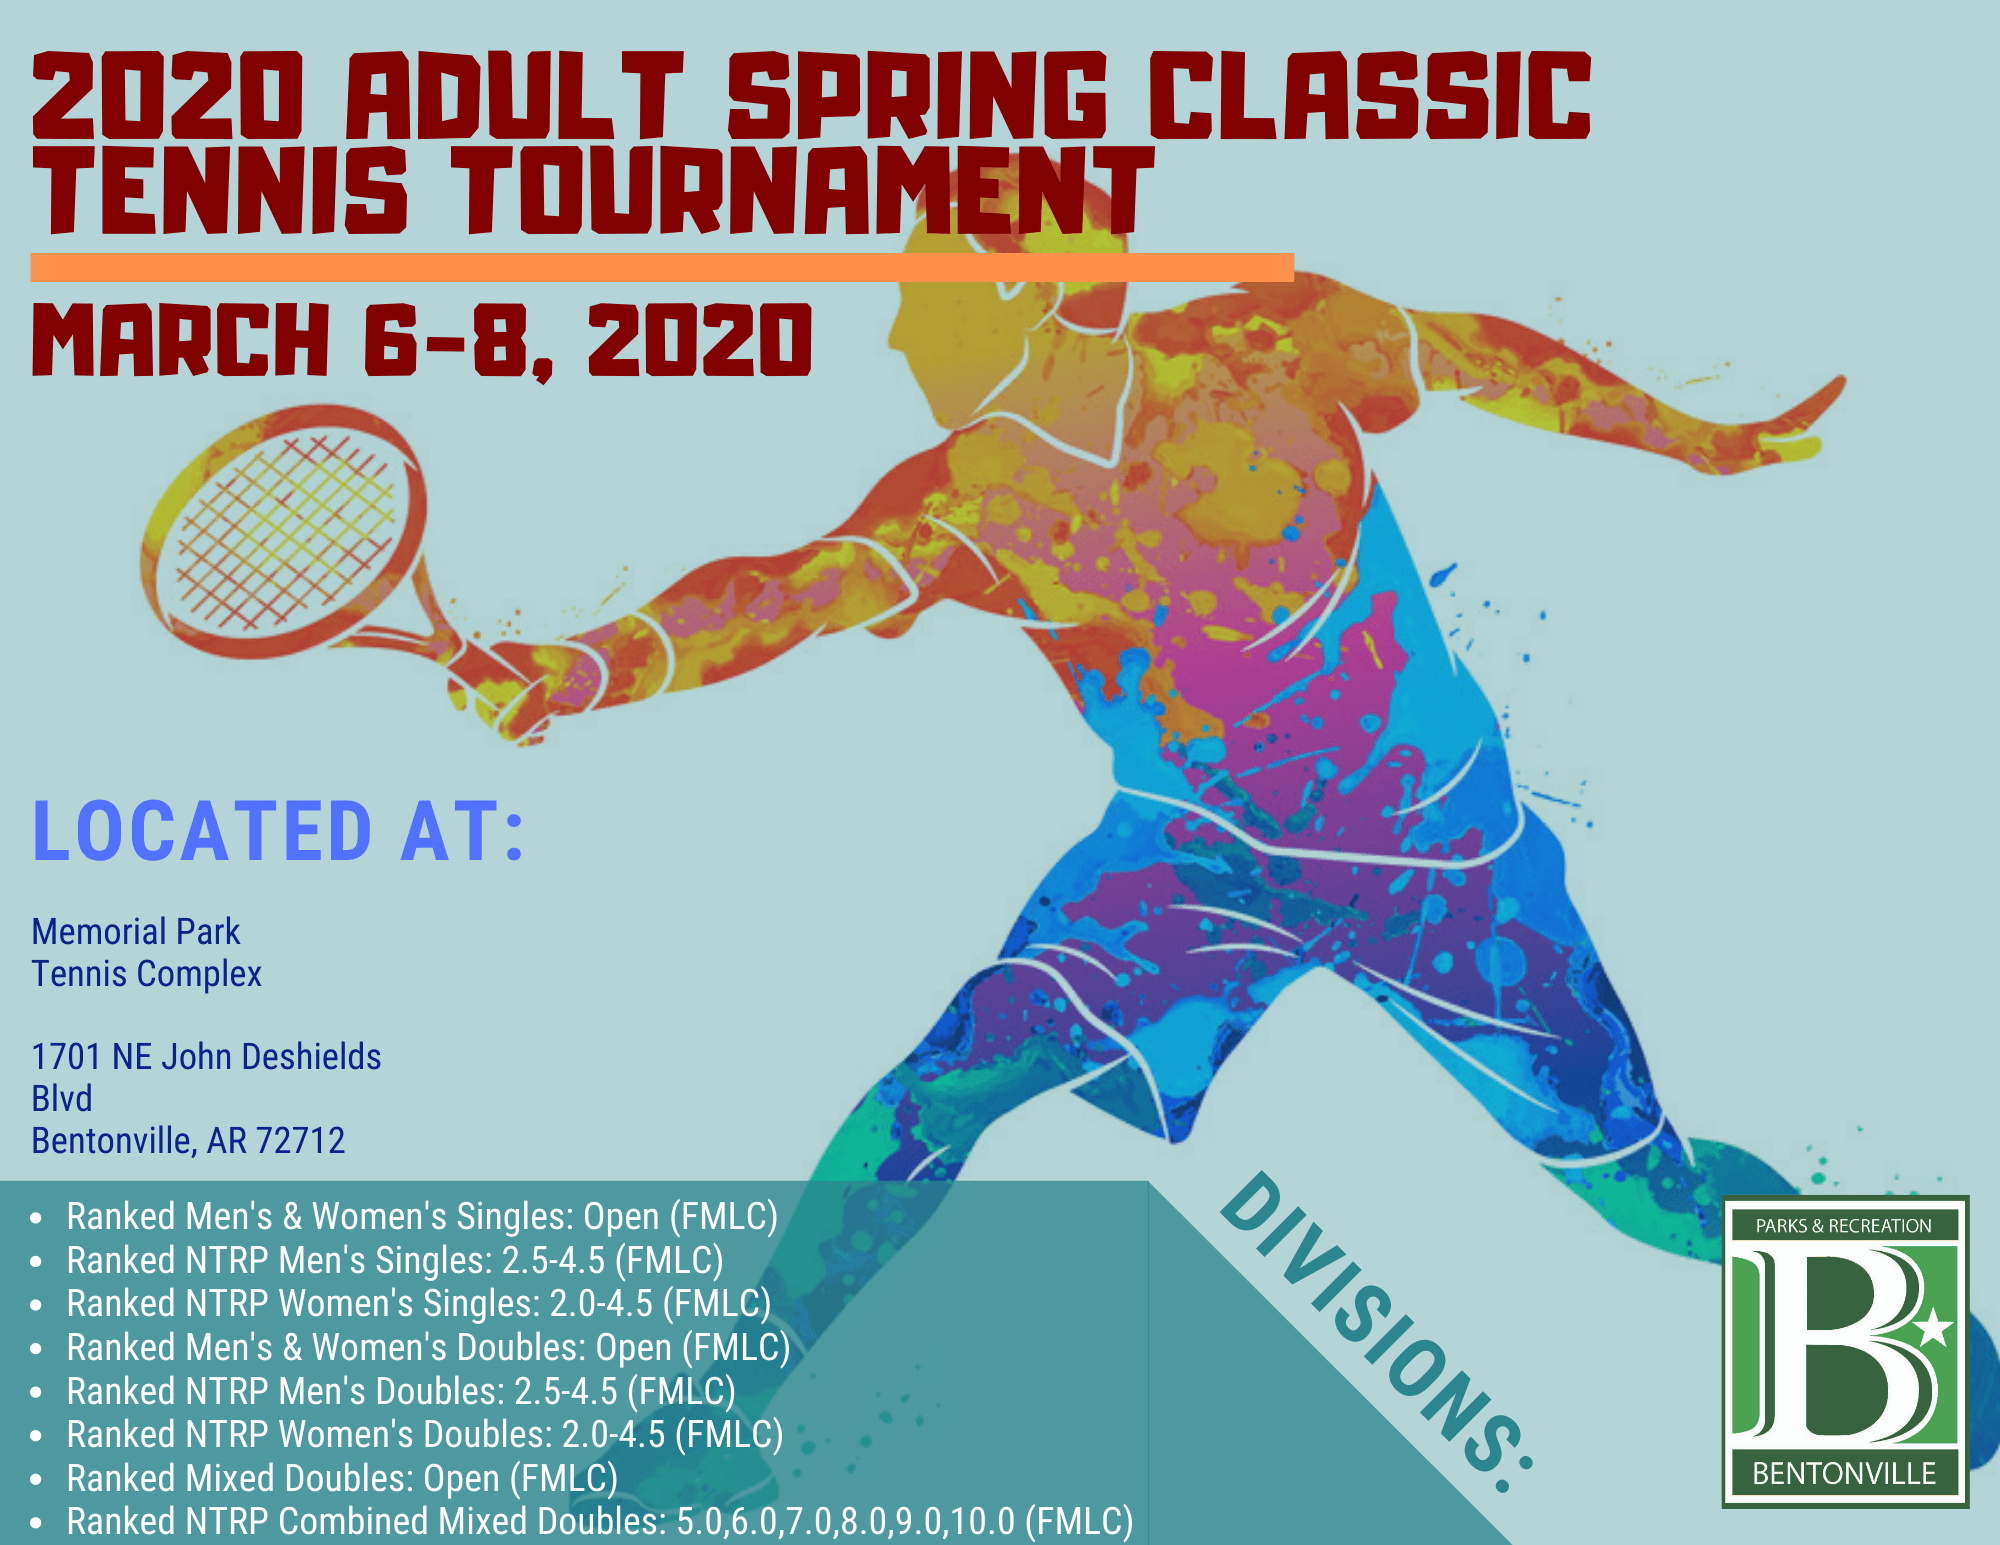 2020 ADULT SPR CLASSIC FLYER